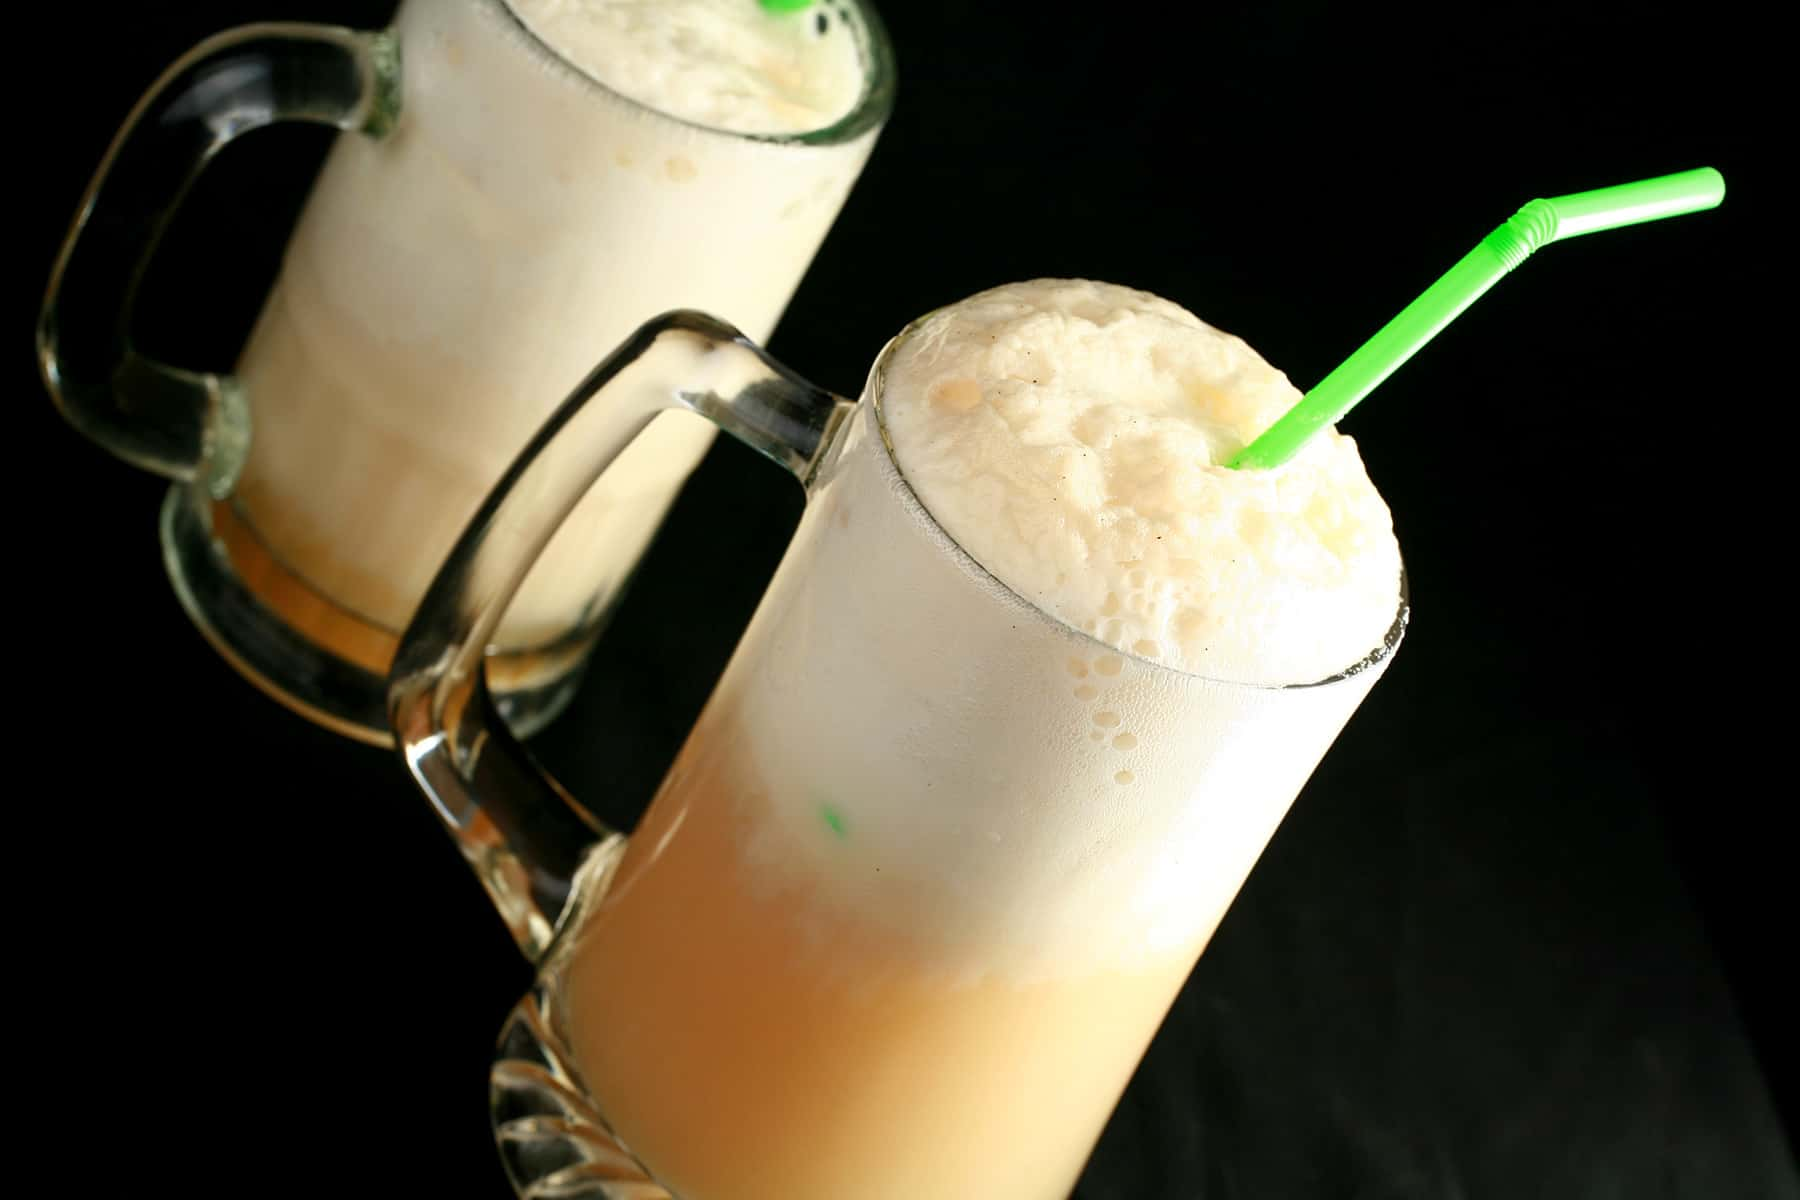 Two tall beer steins with sparkling cider floats in them.